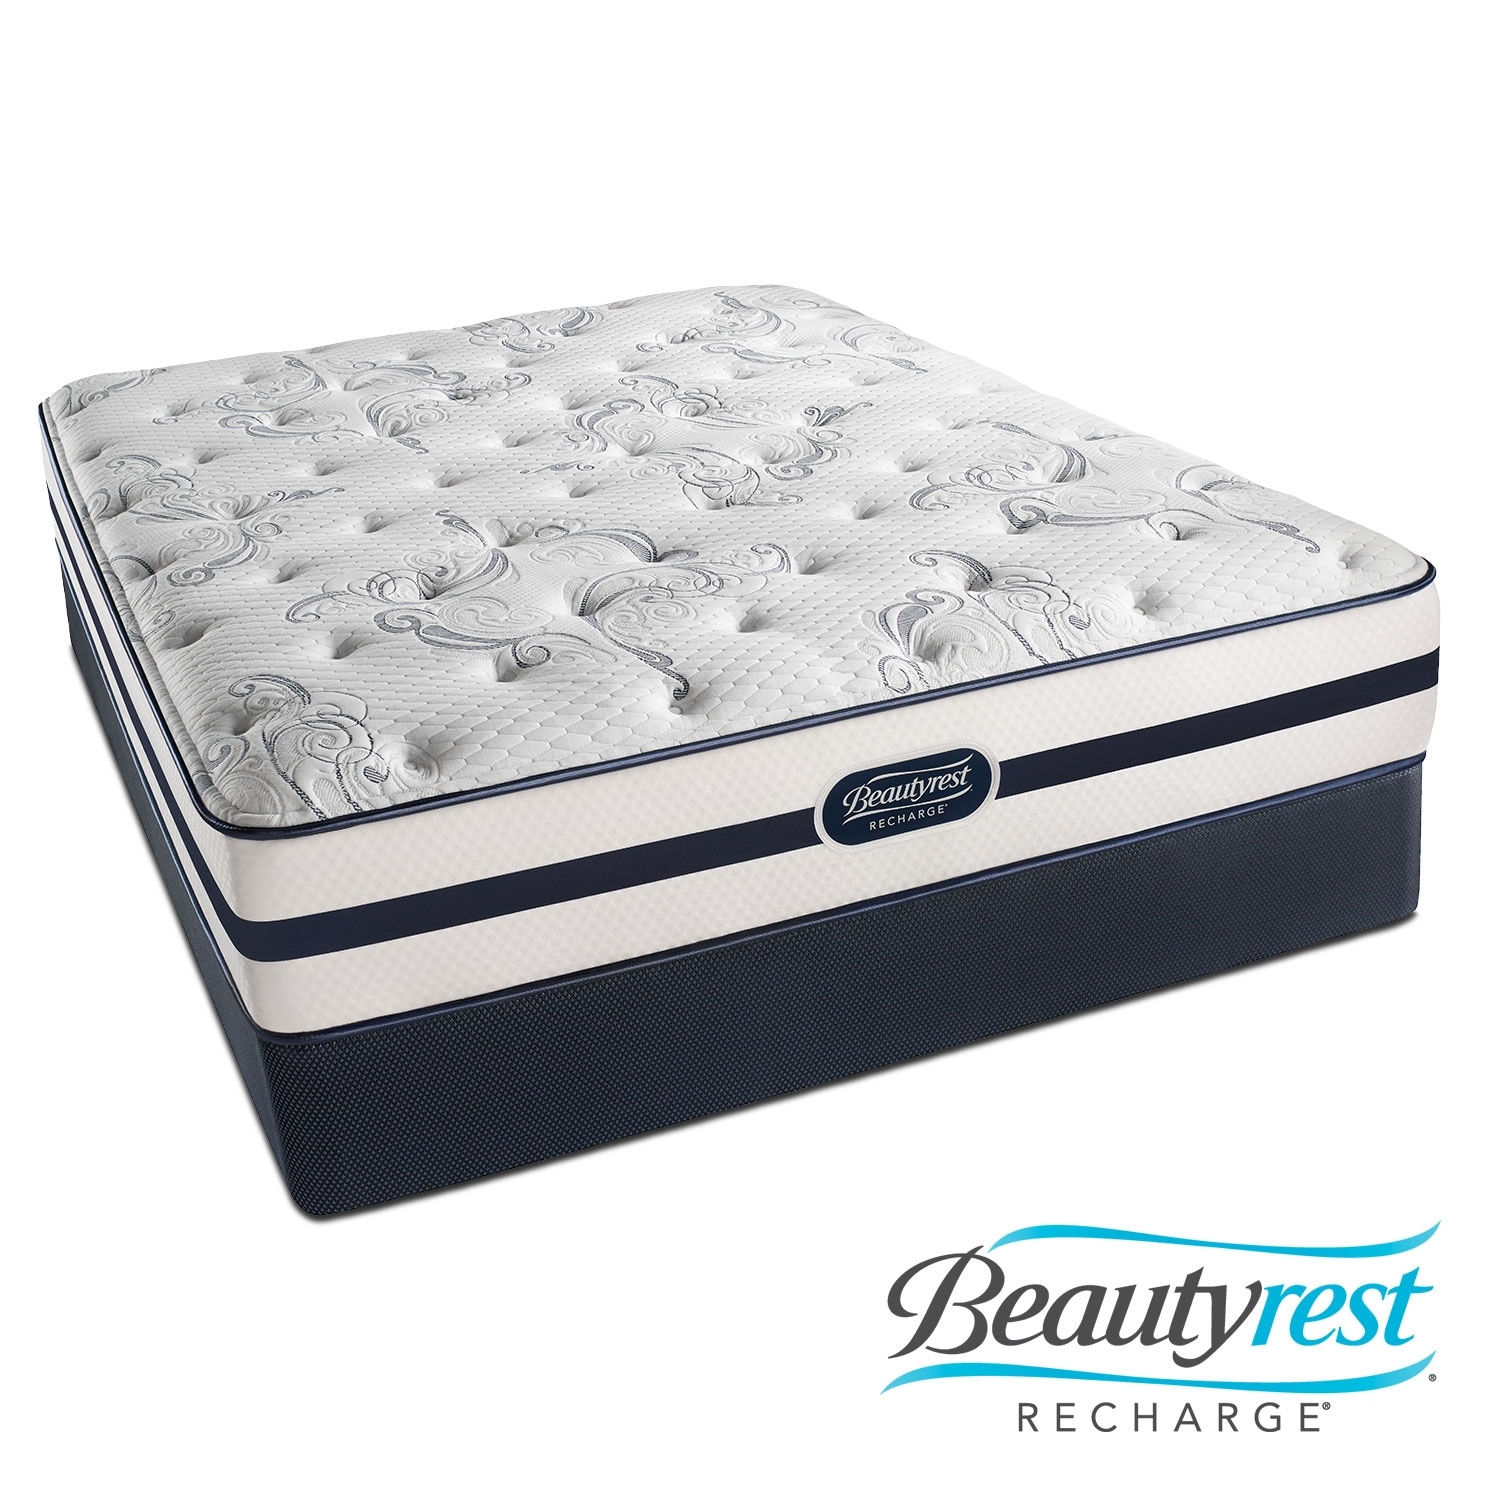 Mattresses and Bedding - Justine Plush Twin Mattress/Foundation Set